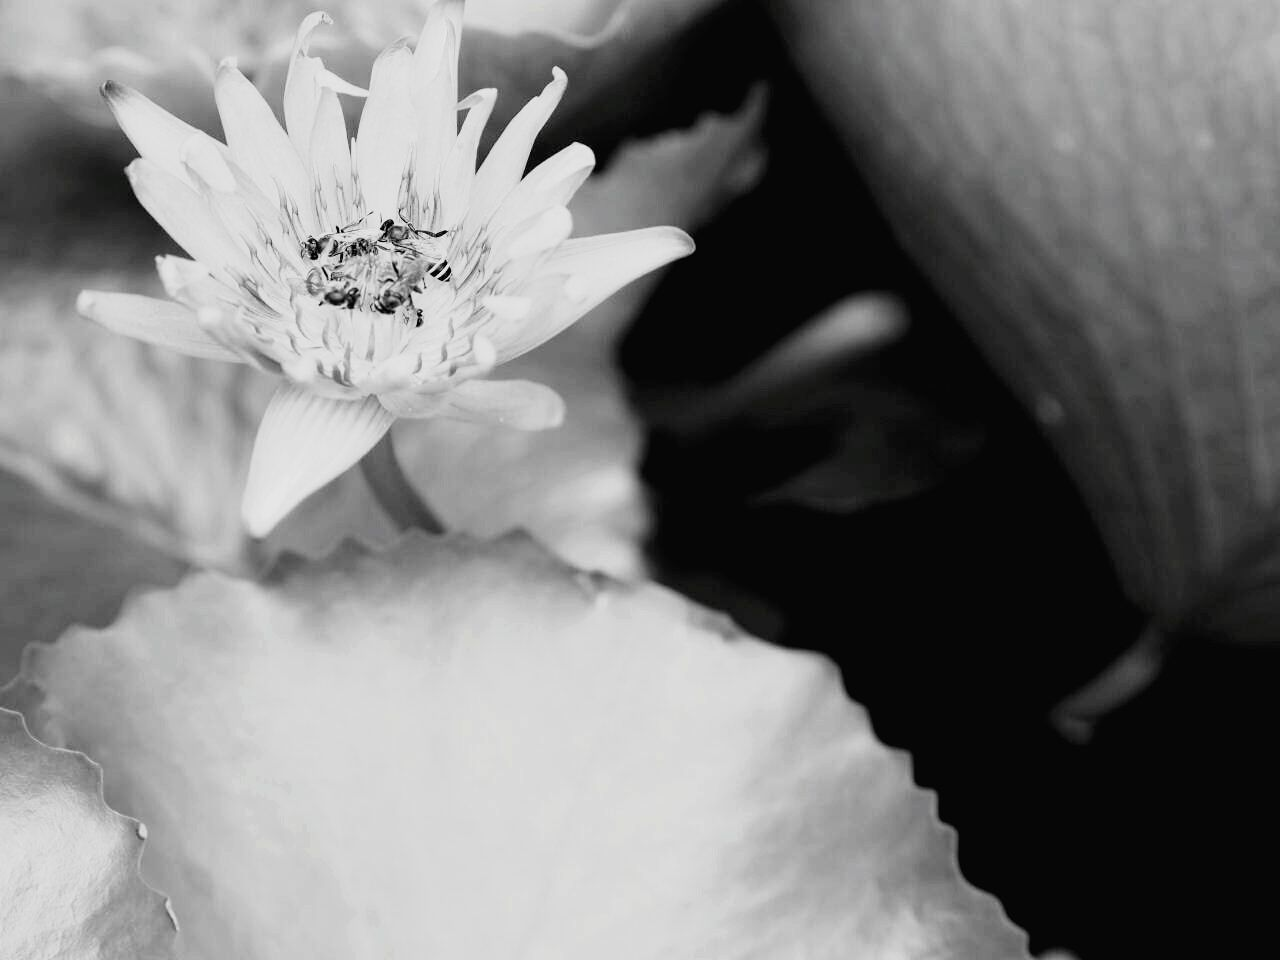 Flower Nature Beauty In Nature Fragility Freshness Plant Growth Flower Head Petal Insect Purple Outdoors Pollen Close-up Animals In The Wild One Animal Animal Themes Day Leaf No People EyeEm Thailand EyeEm Best Shots EyeEmBestPics Beauty In Nature Black And White